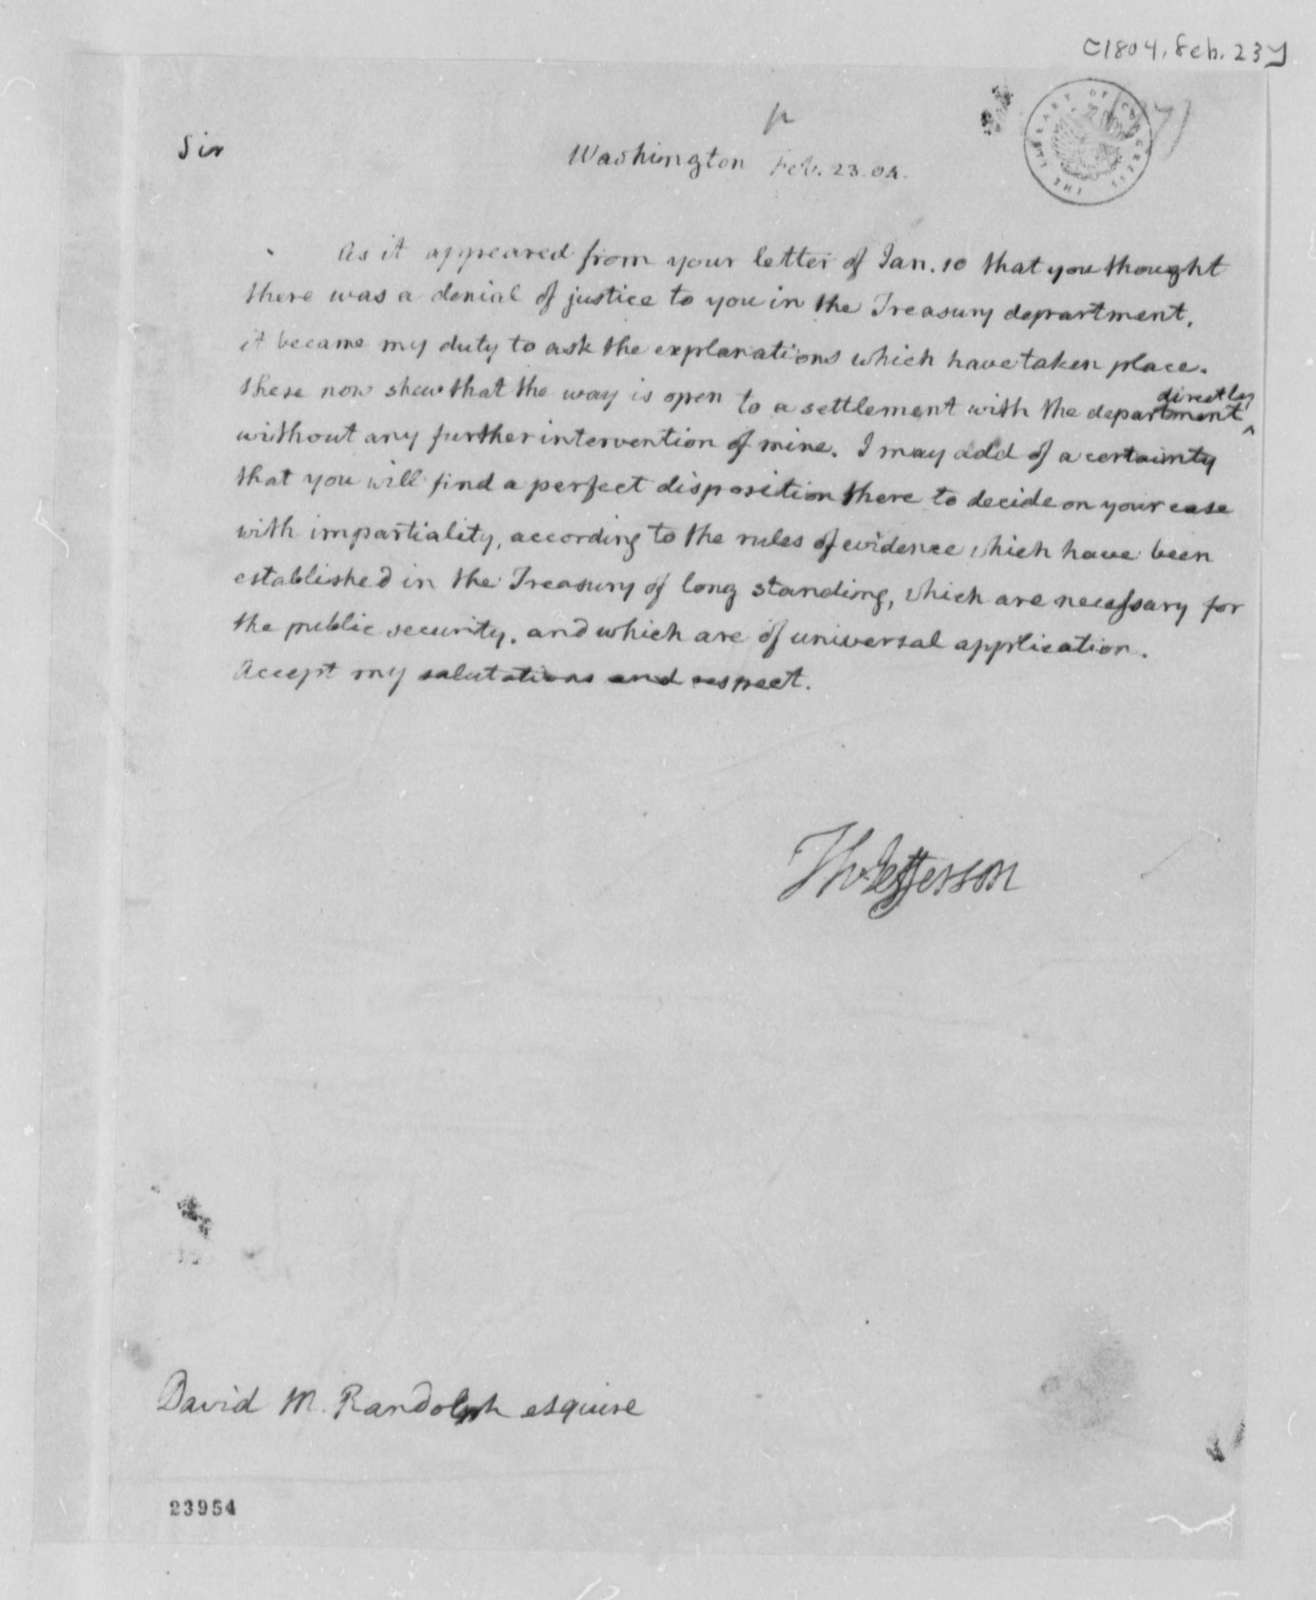 Thomas Jefferson to David Meade Randolph, February 23, 1804